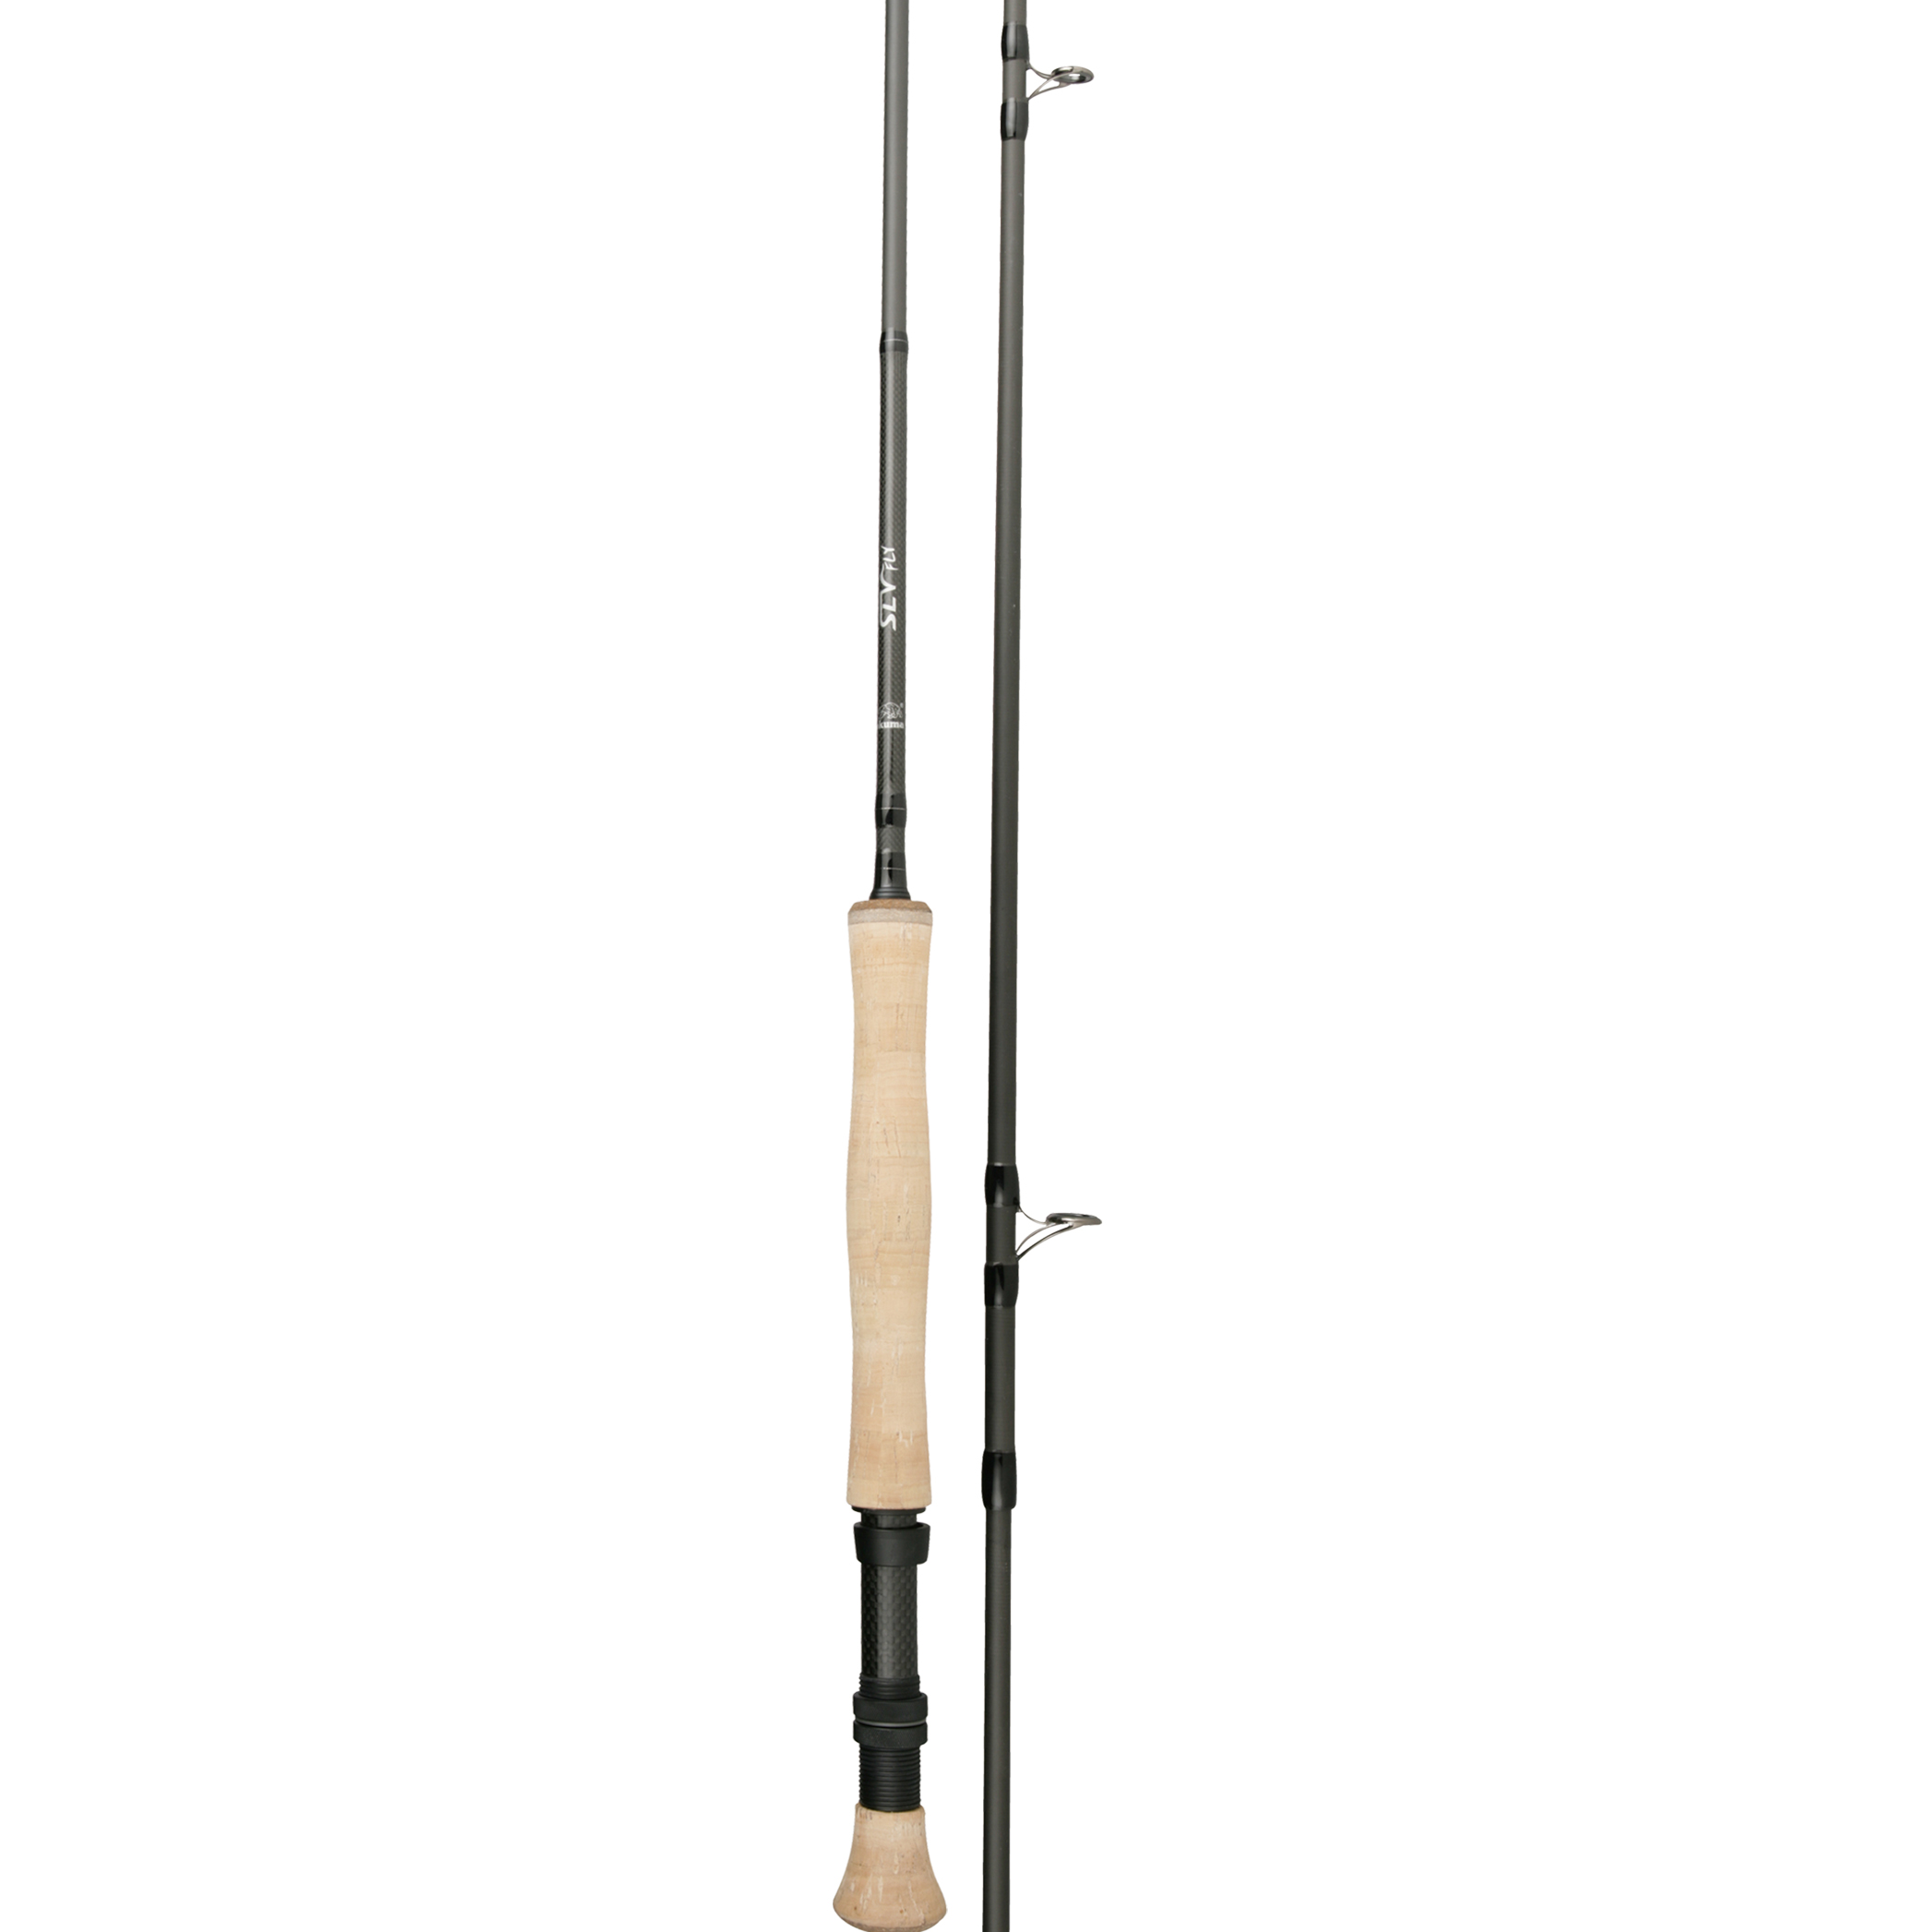 SLV Fly Rod - SLV Fly Rod